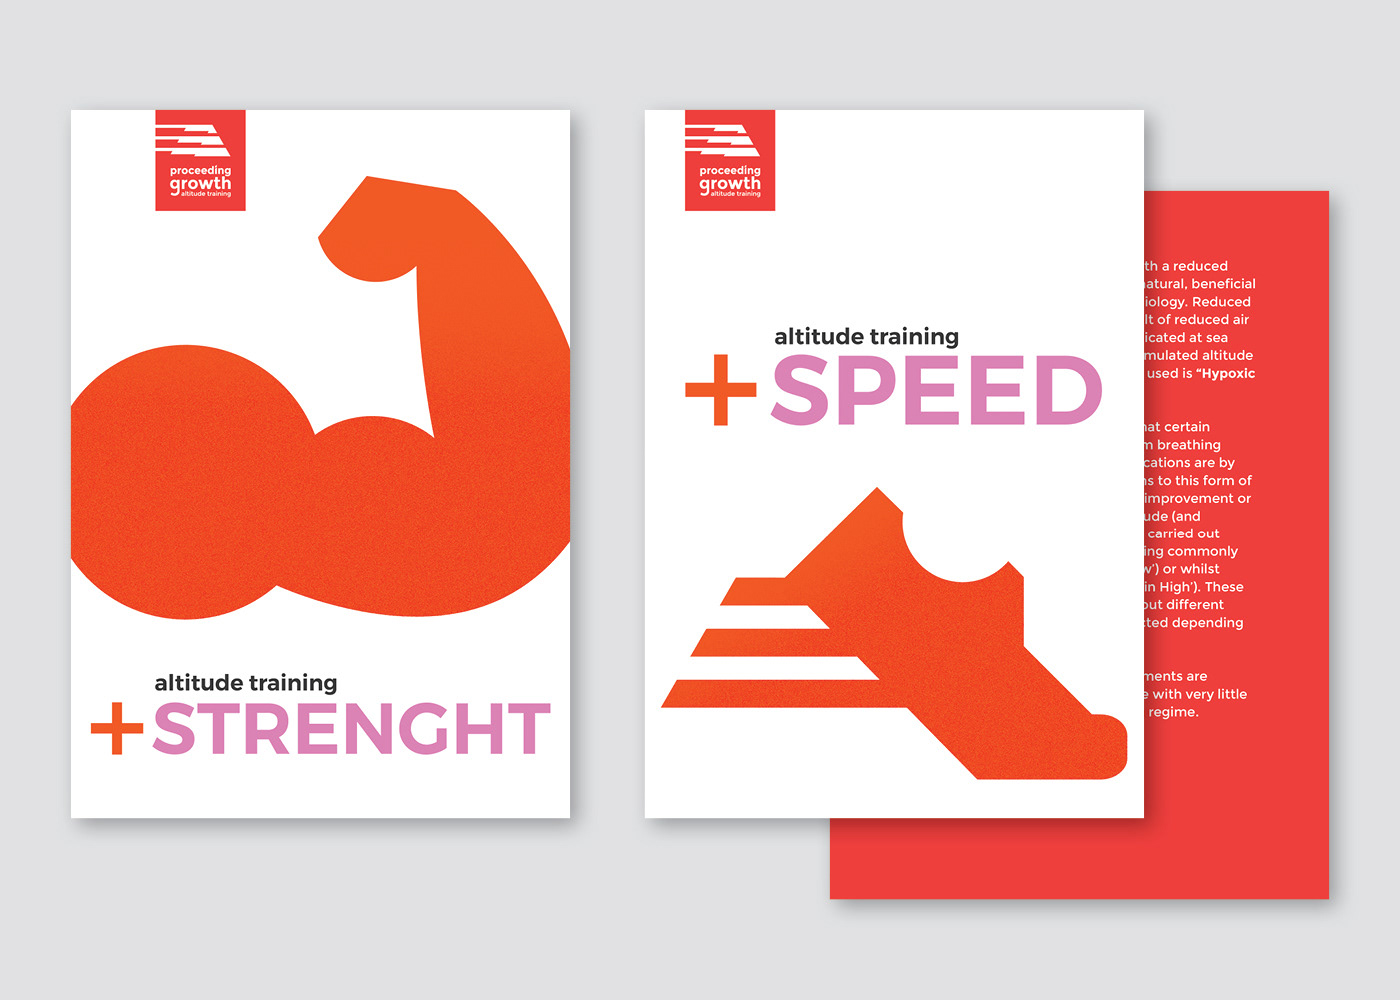 identity altitude training Performance speed strenght icons